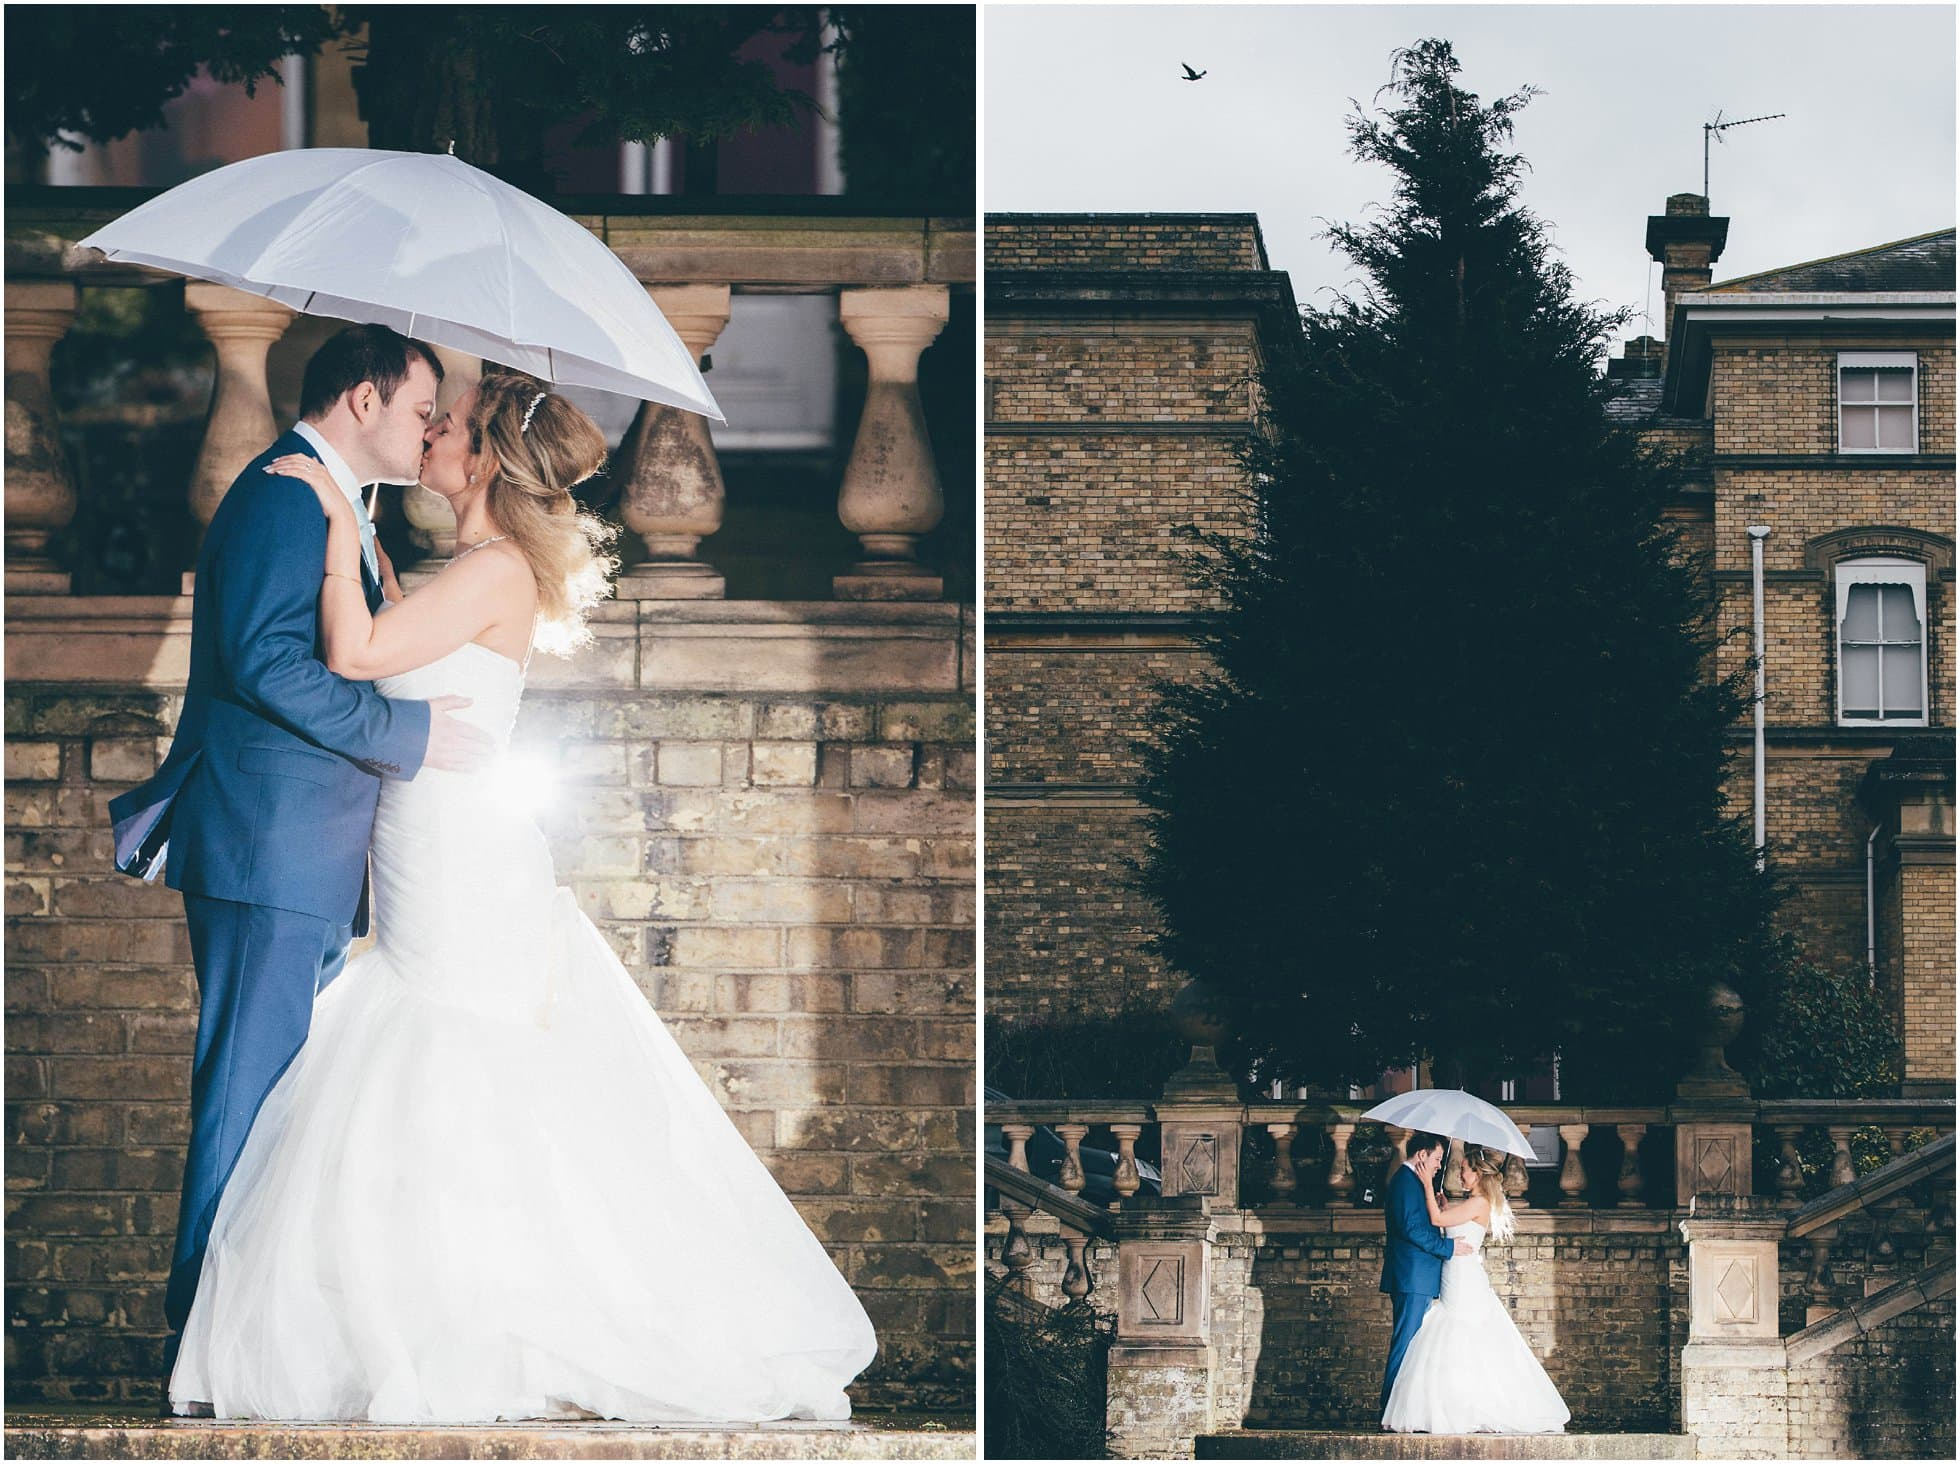 Bride and groom in wet rainy weather at Ponsbourne Park Hotel